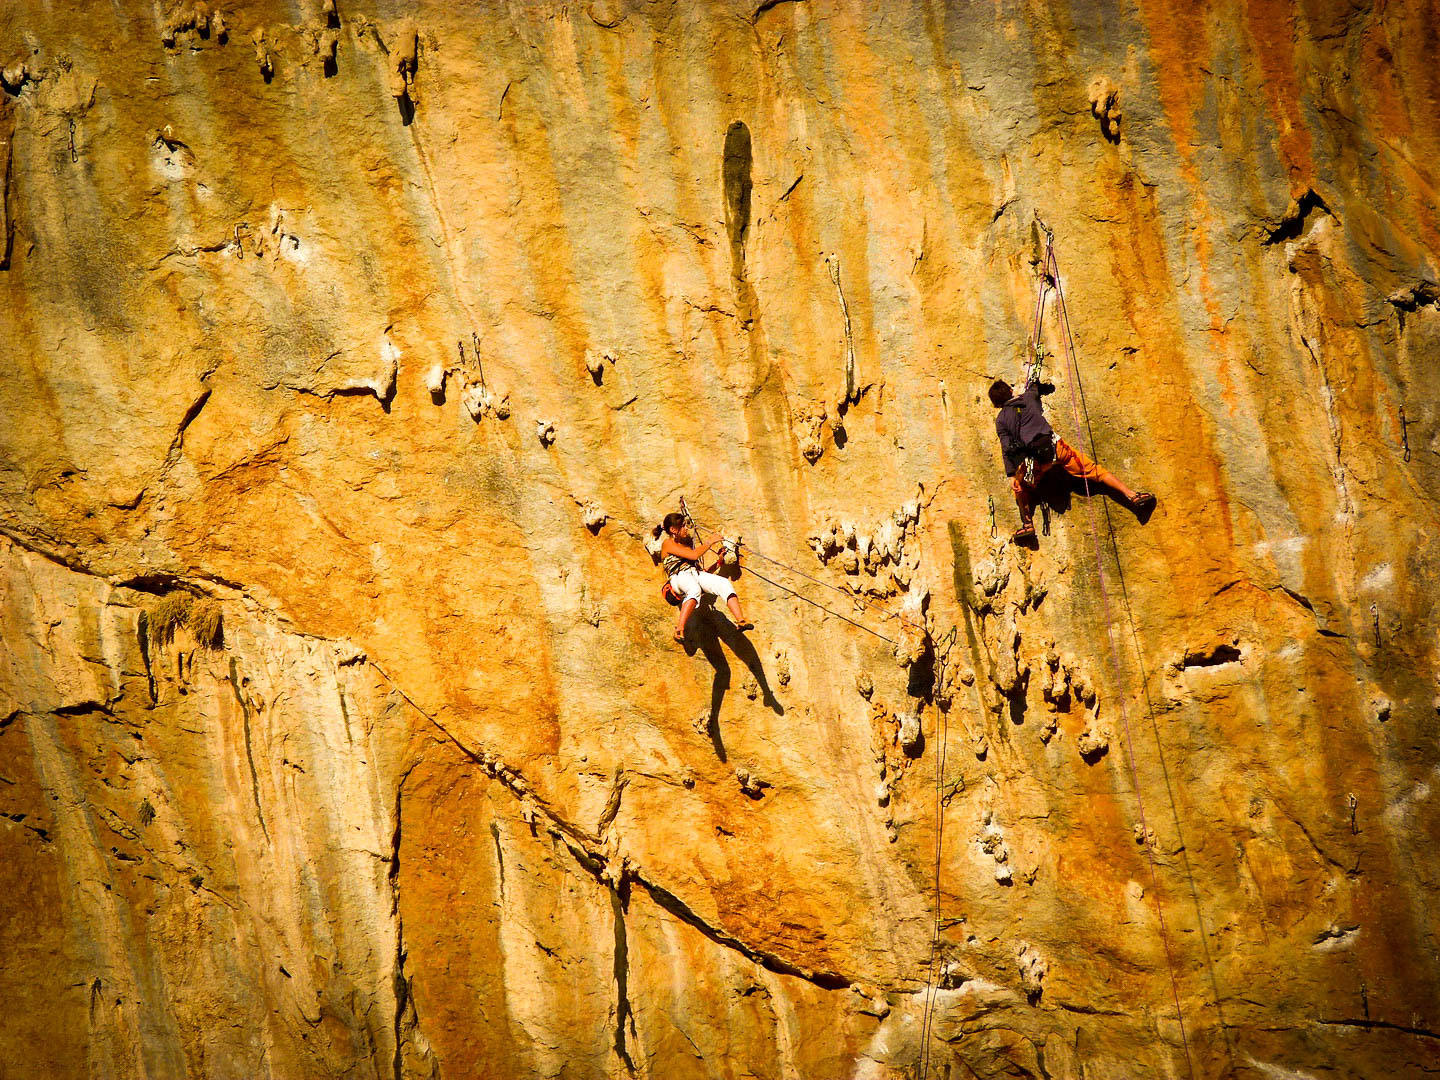 Great climbing routes...